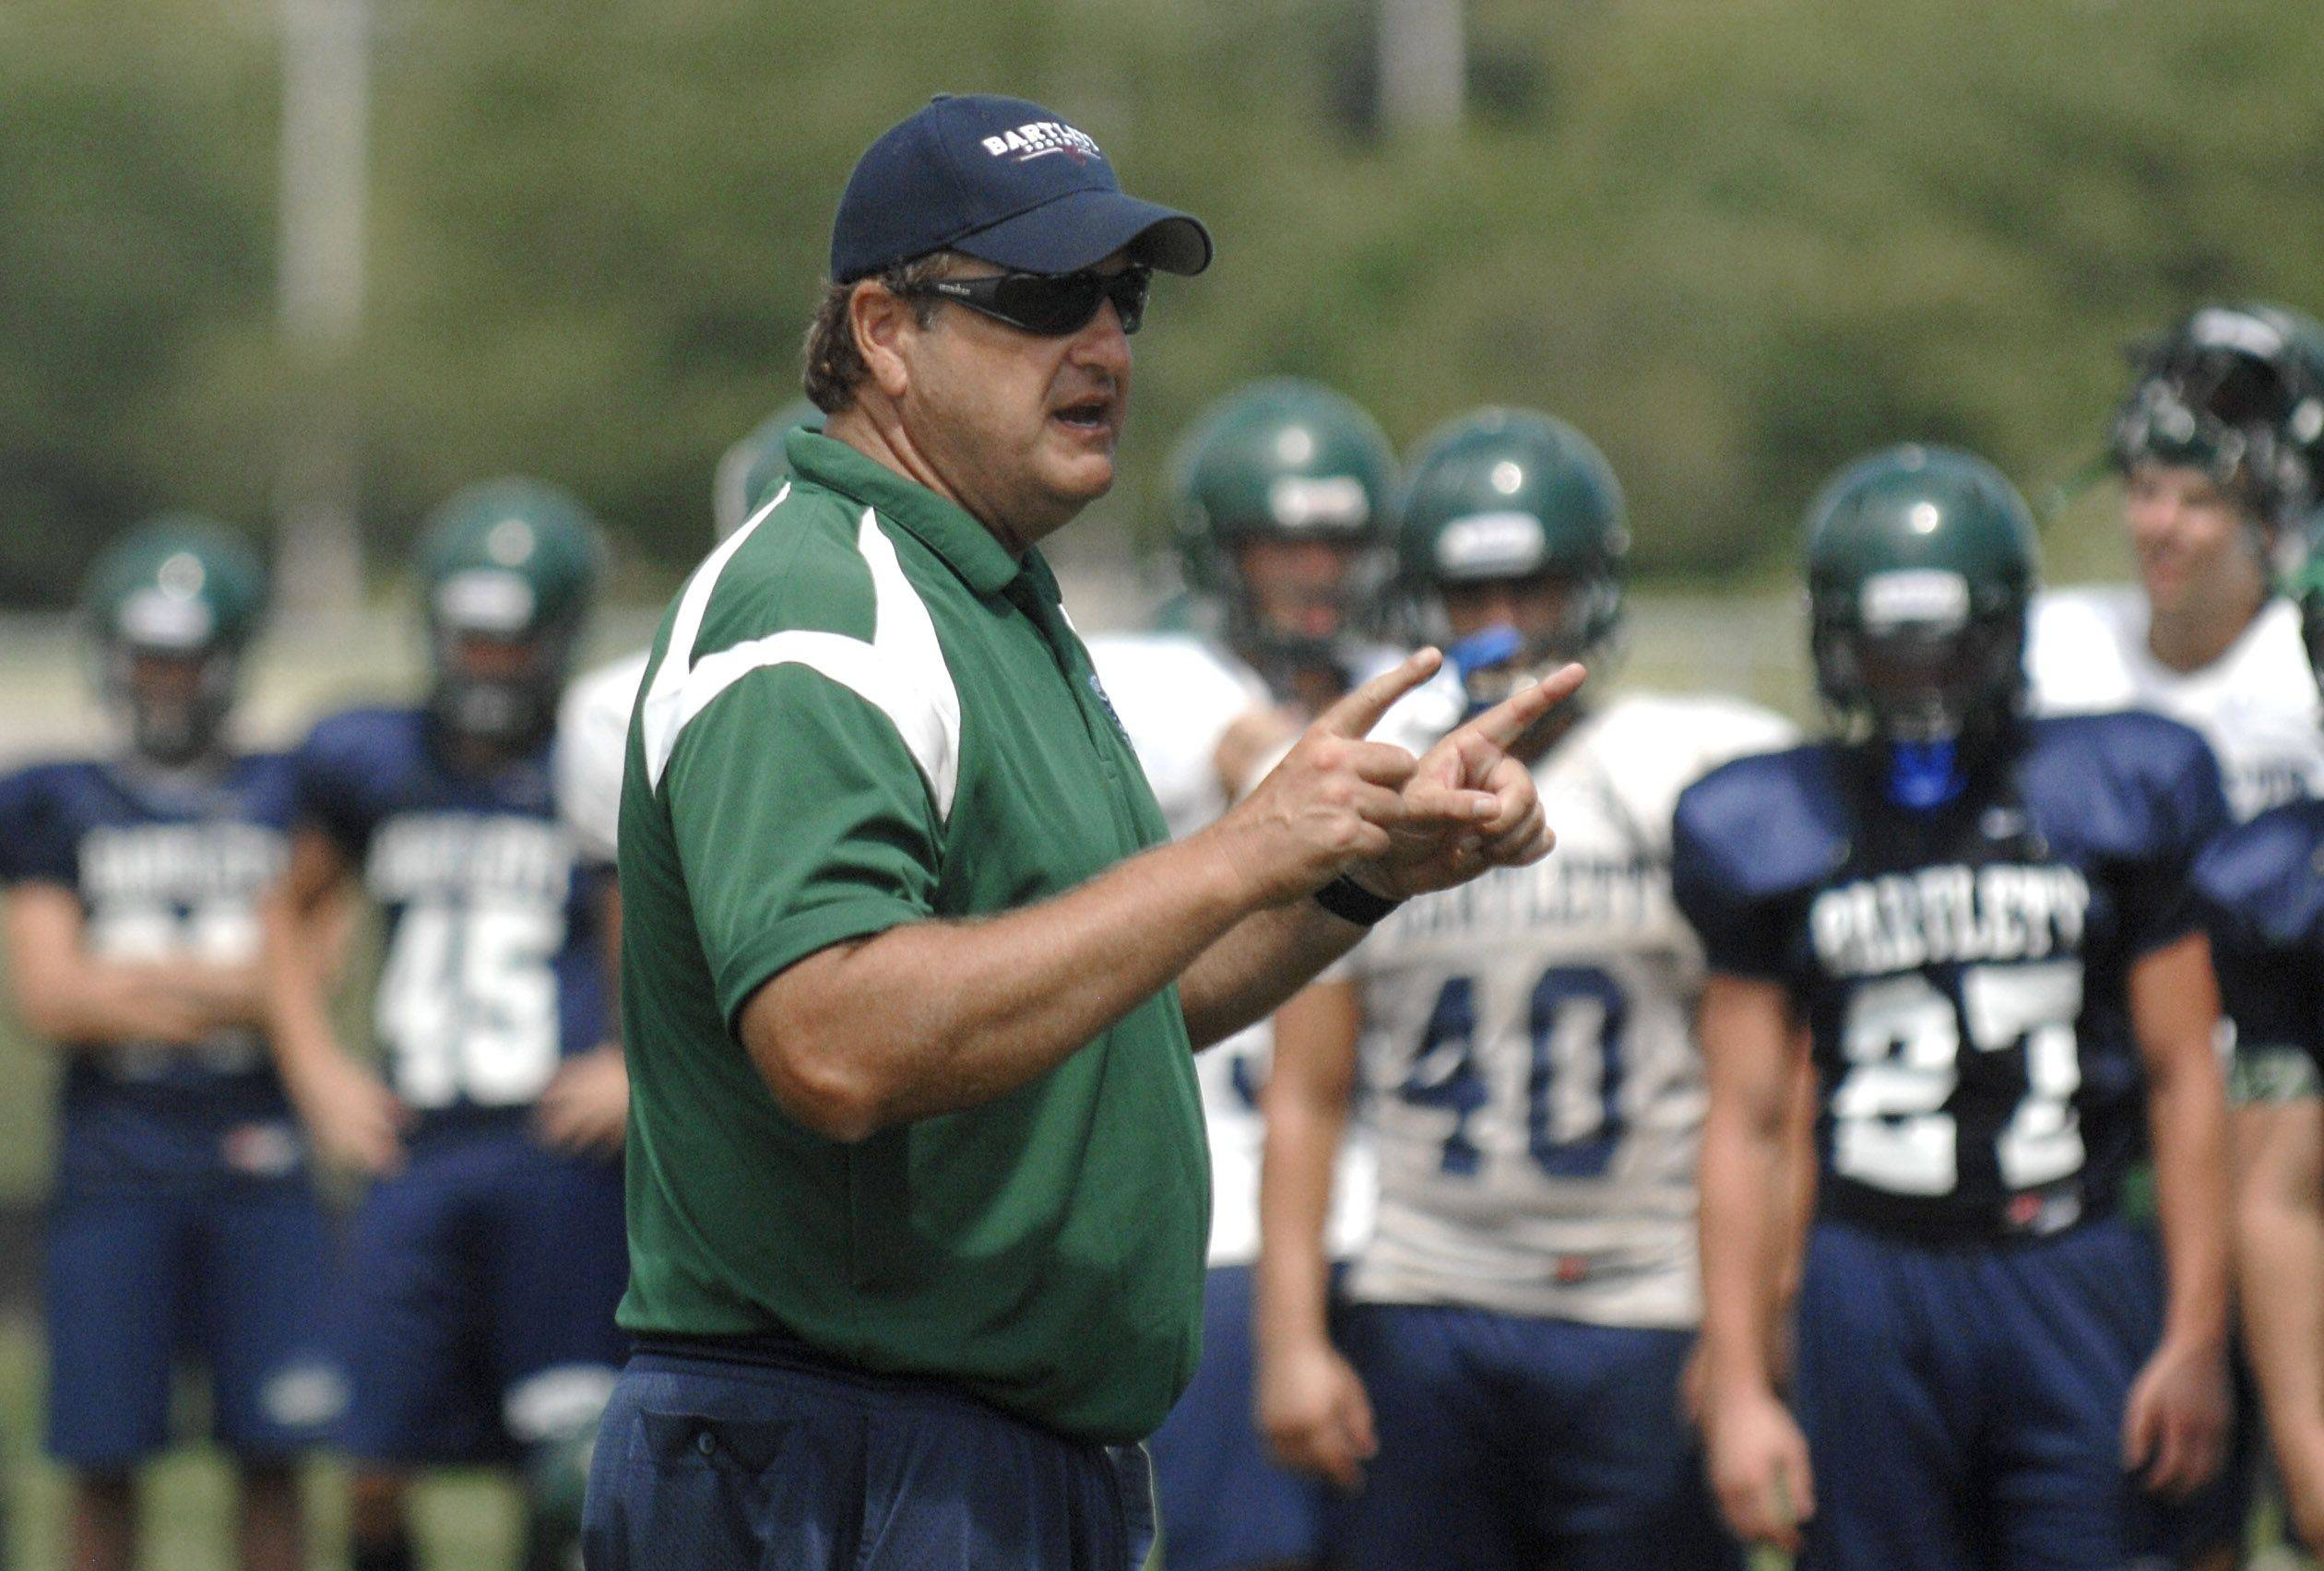 Bartlett head football coach Tom Meaney has fashioned a winning program built around hard work and consistency within the coaching staff.